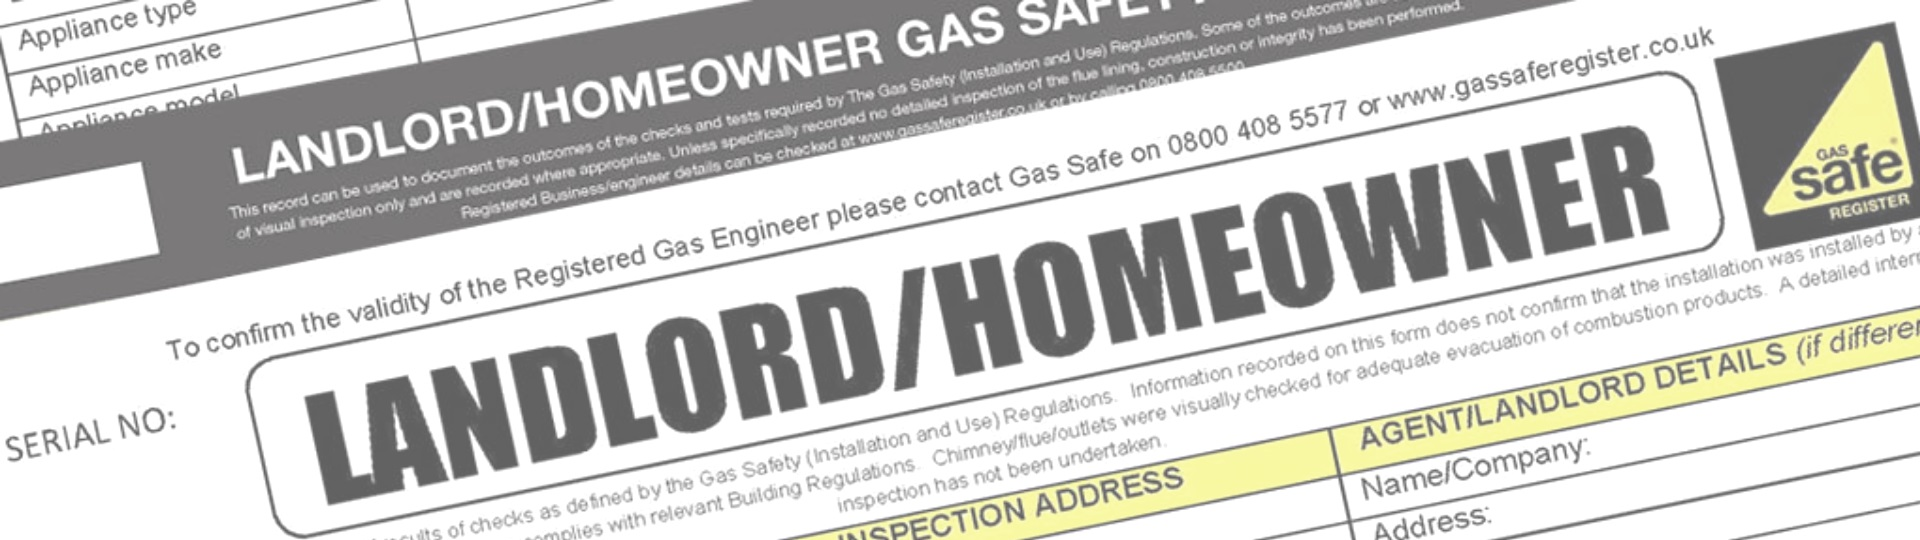 Gas Saftey Certificates Stockwood